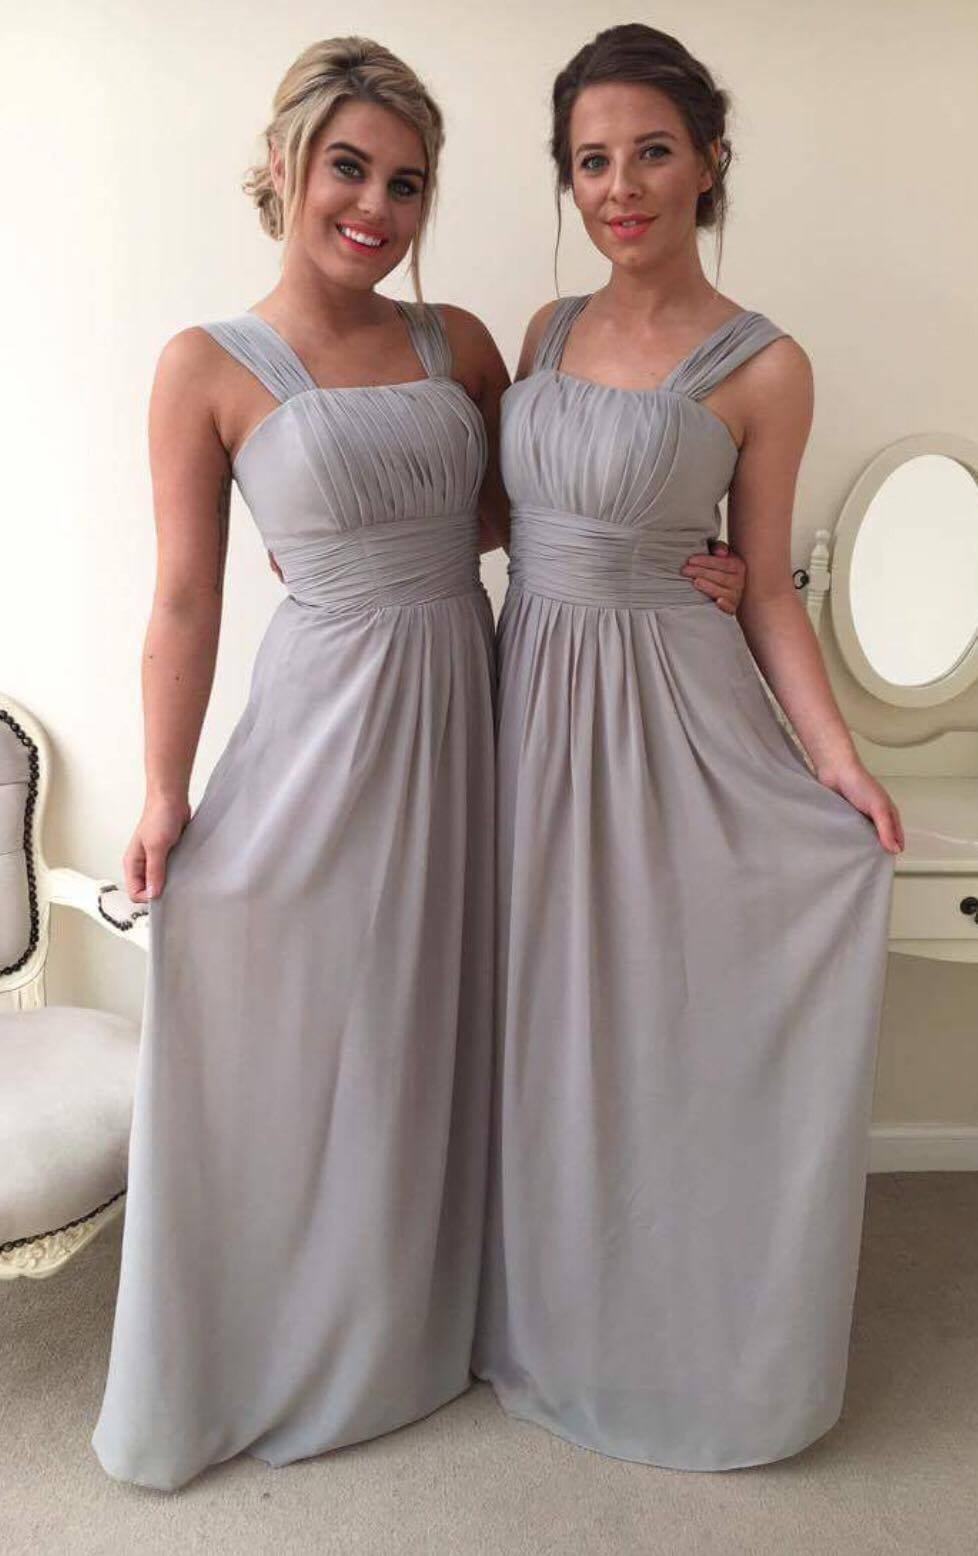 Minnie Dress Plus Size - That Special Day Bridal Warehouse